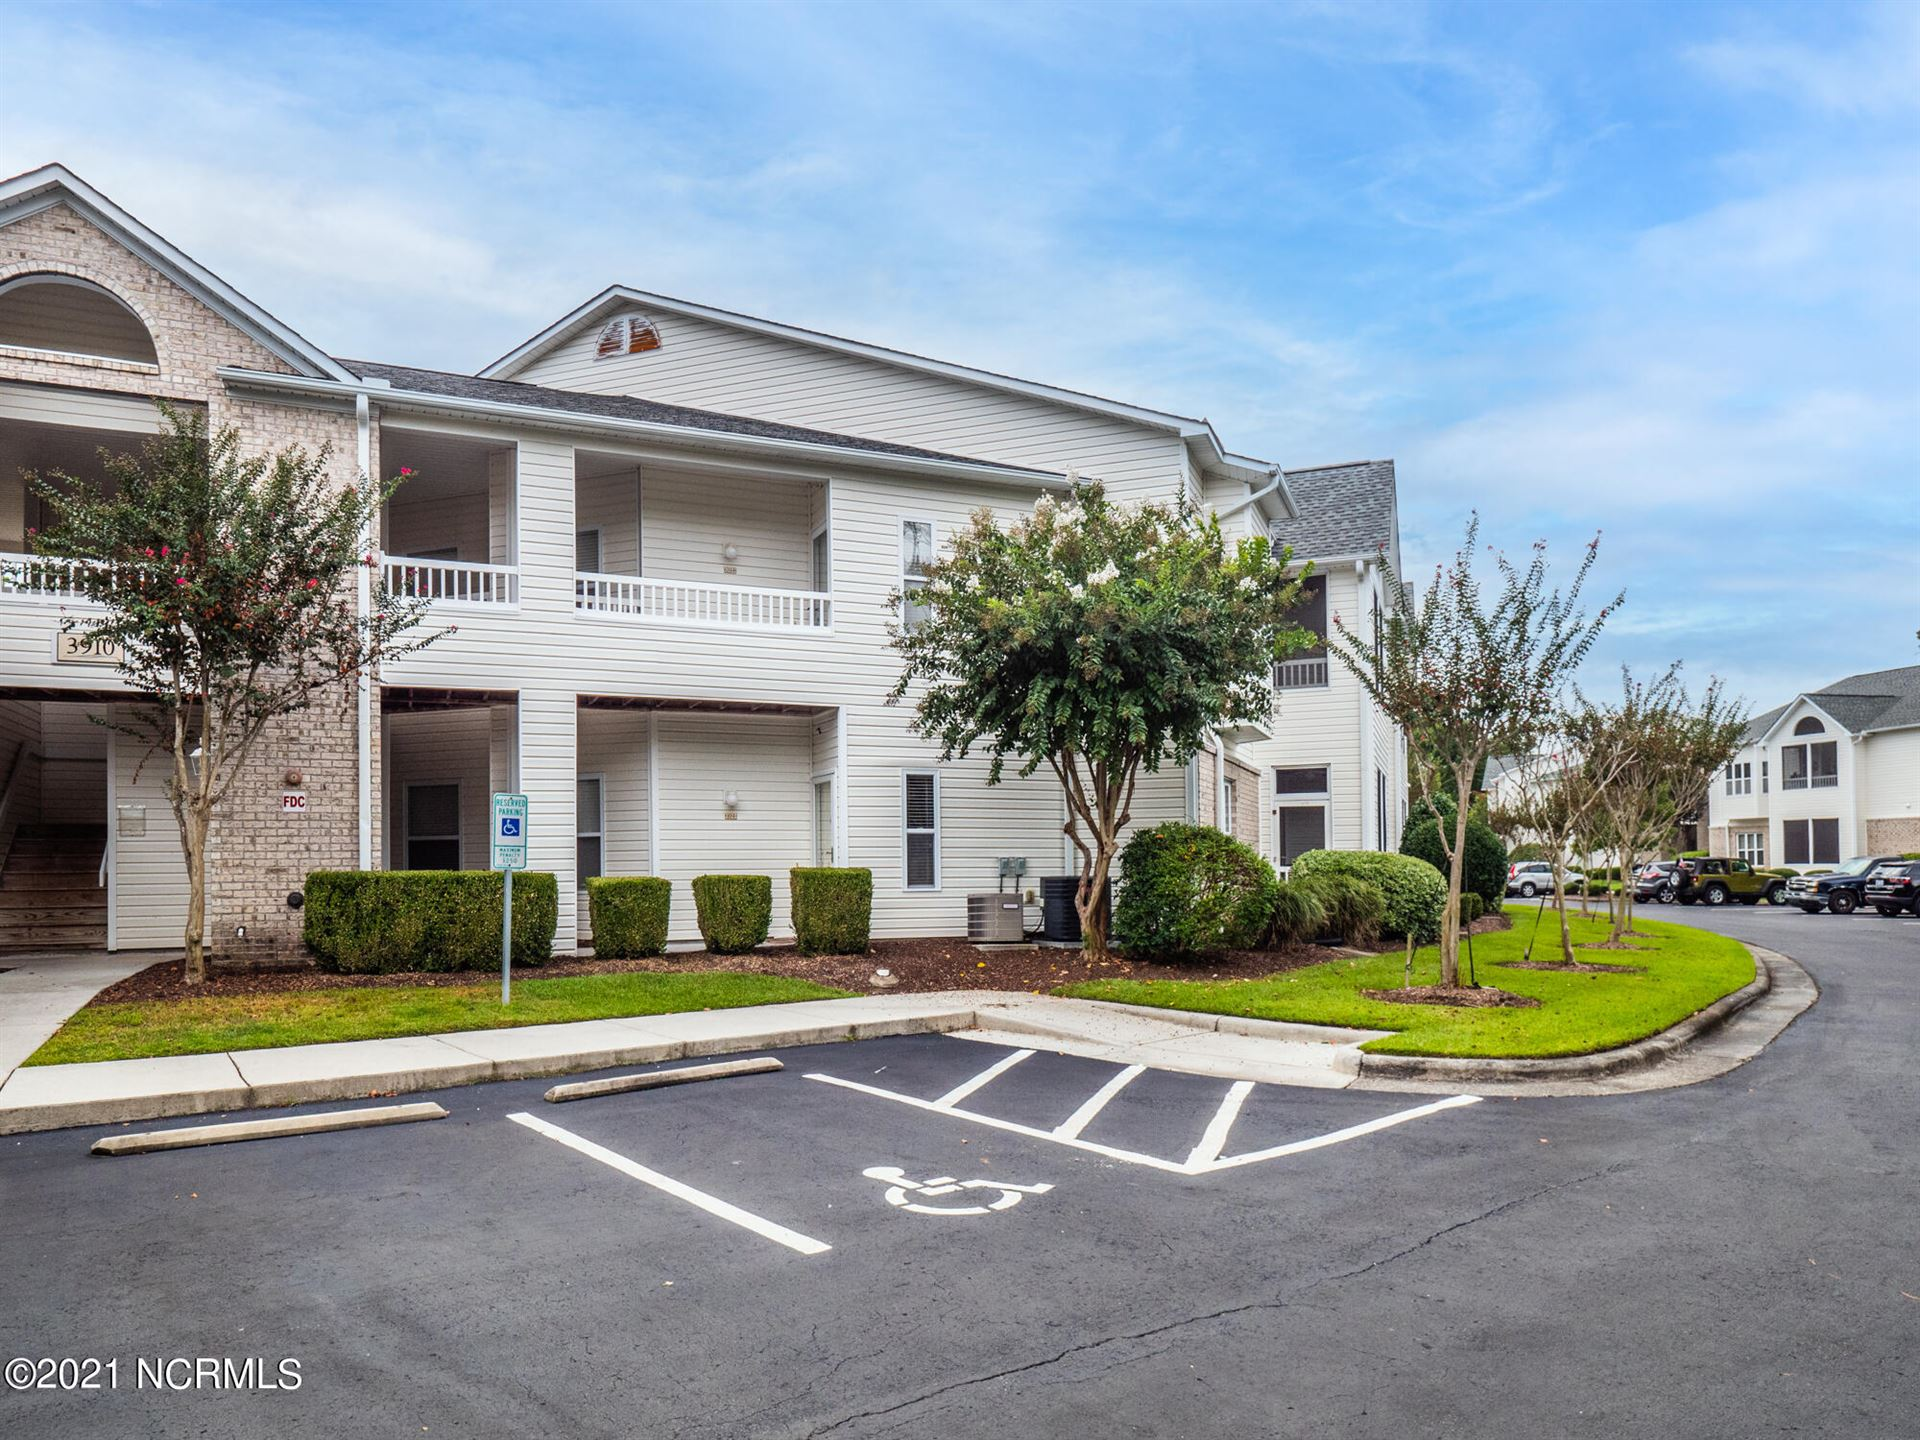 Photo of 3910 River Front Place #204, Wilmington, NC 28412 (MLS # 100291237)